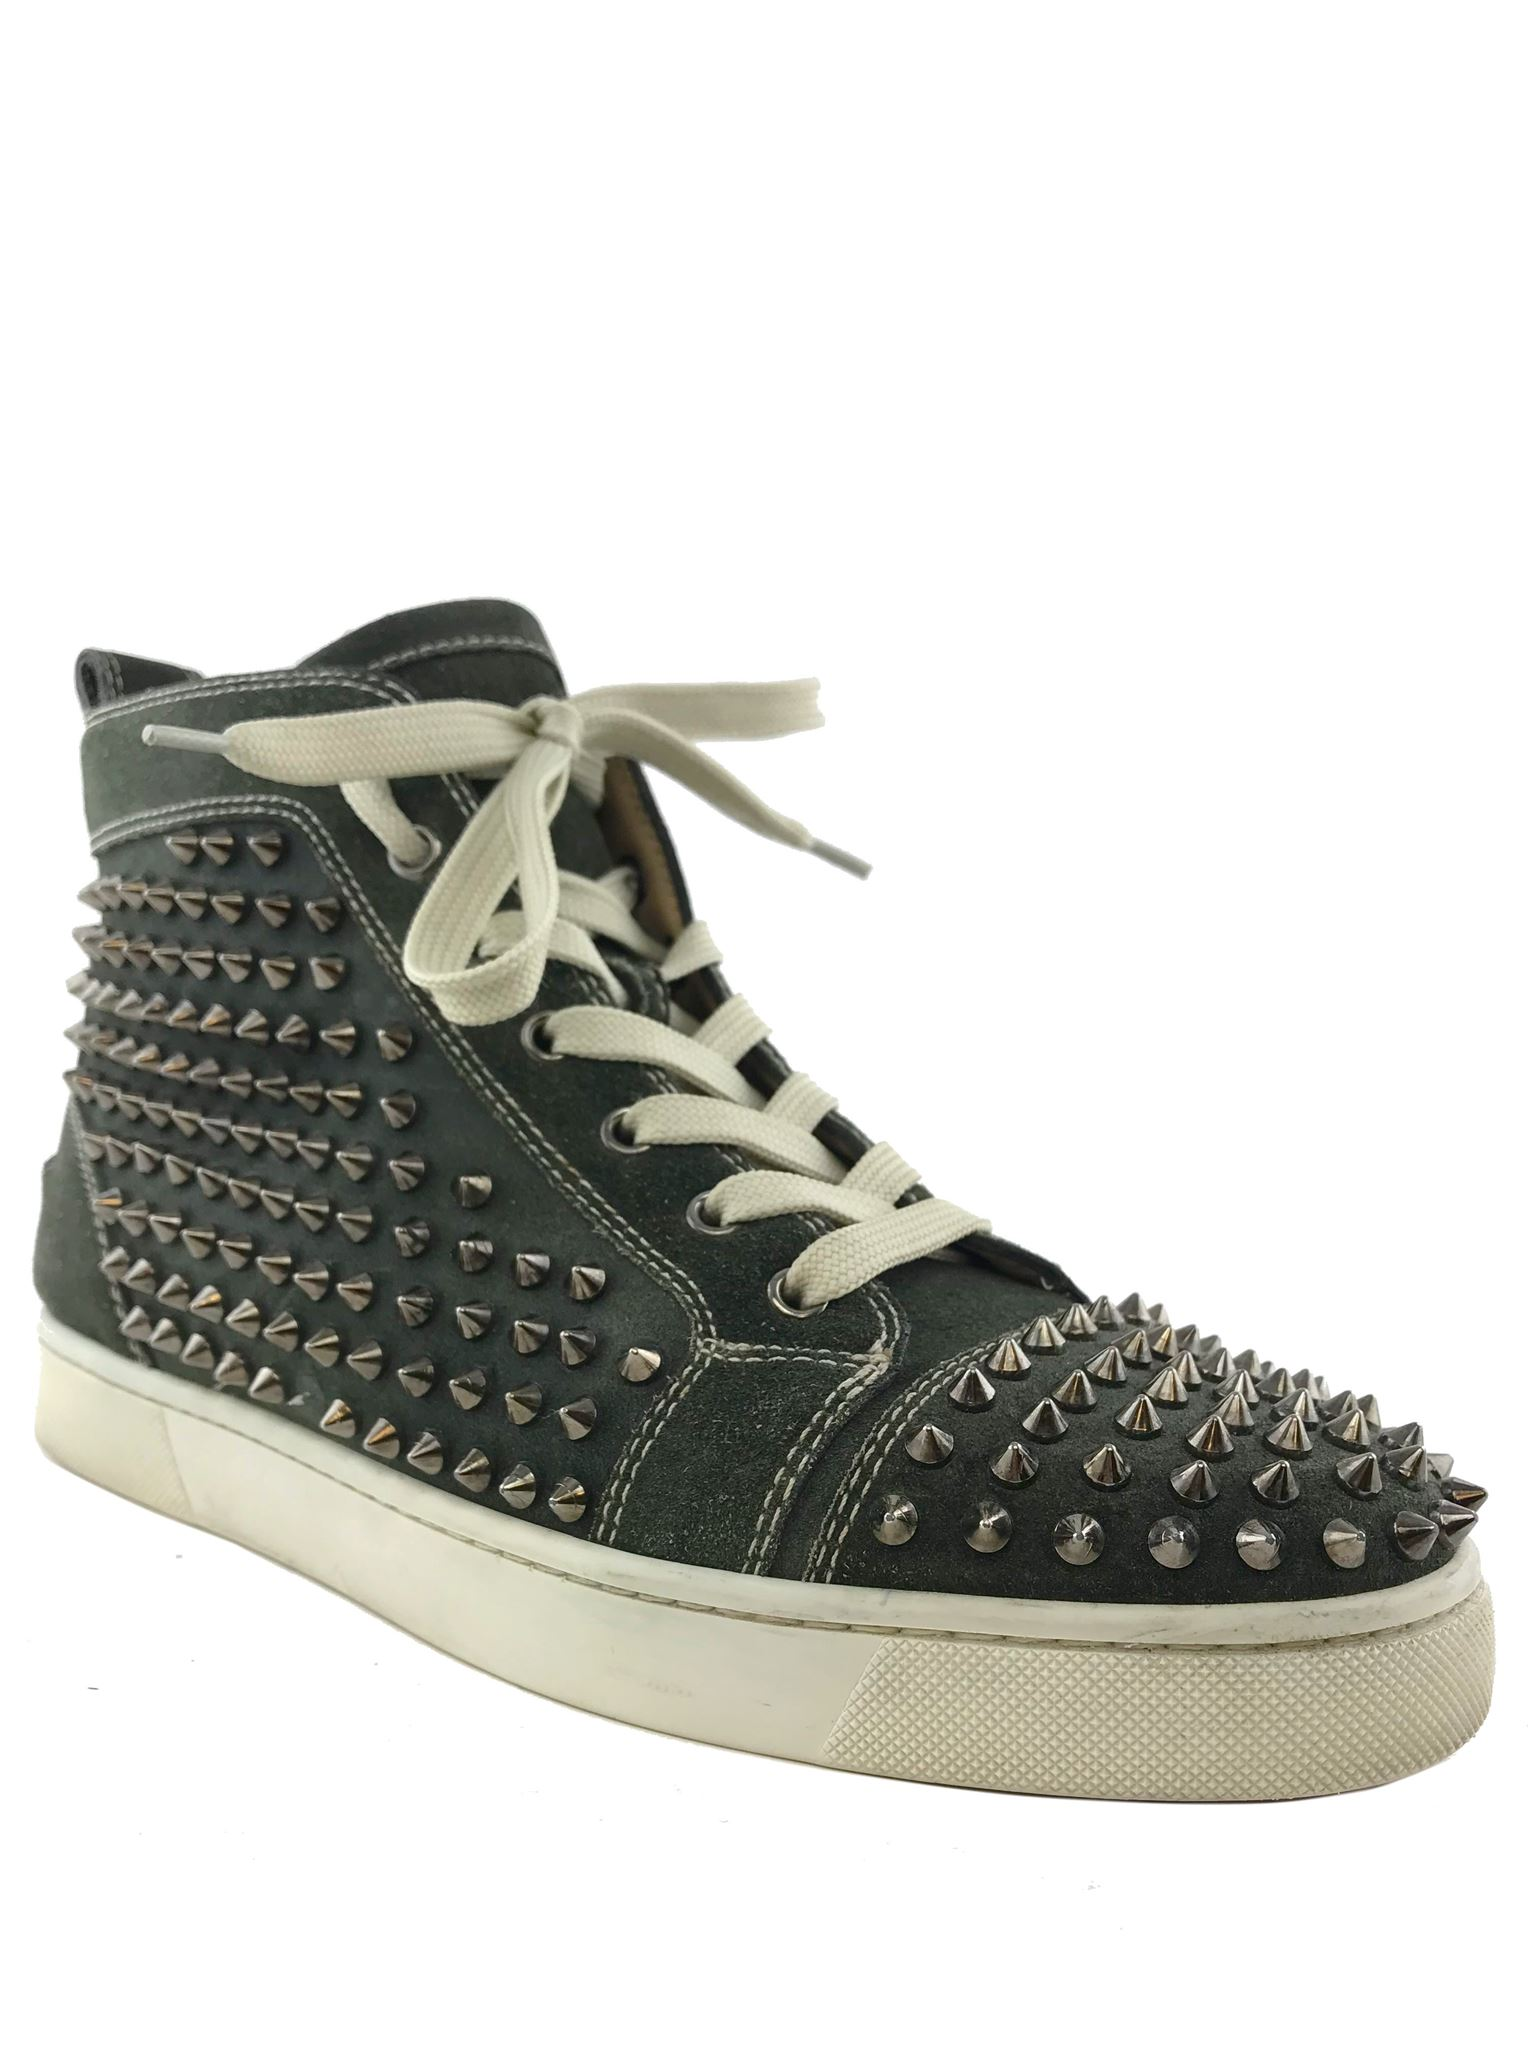 best loved c1815 ee0a4 Details about Christian Louboutin Men's Louis Spikes Sneakers Size 8